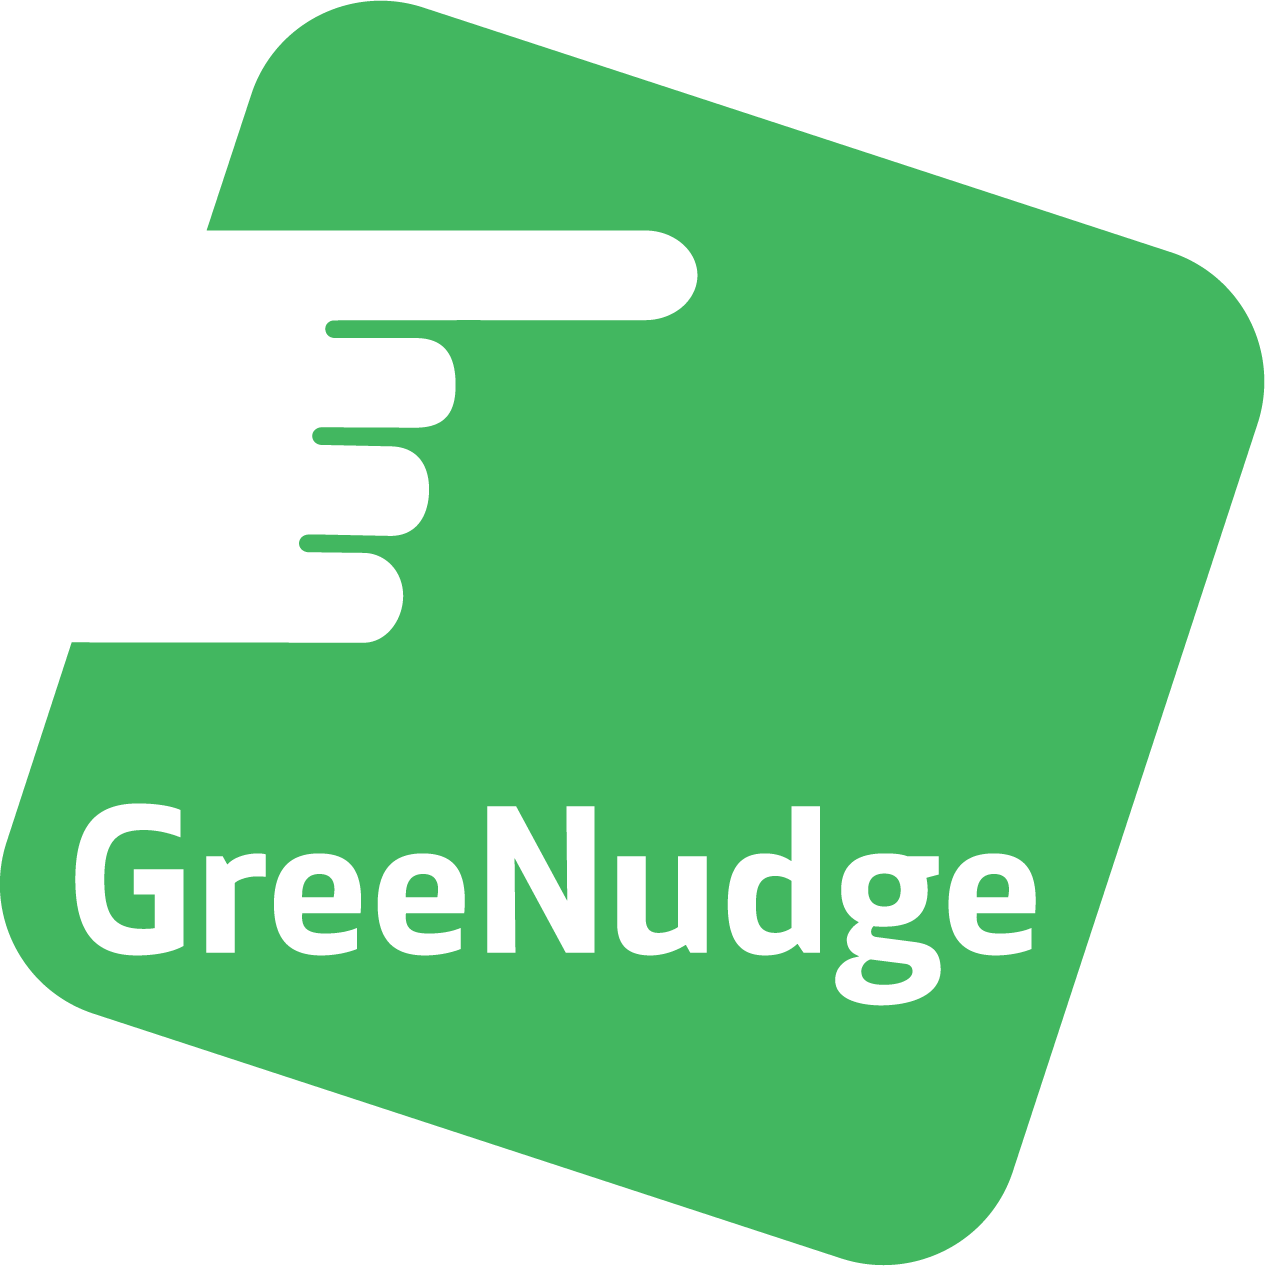 GreeNudge logo